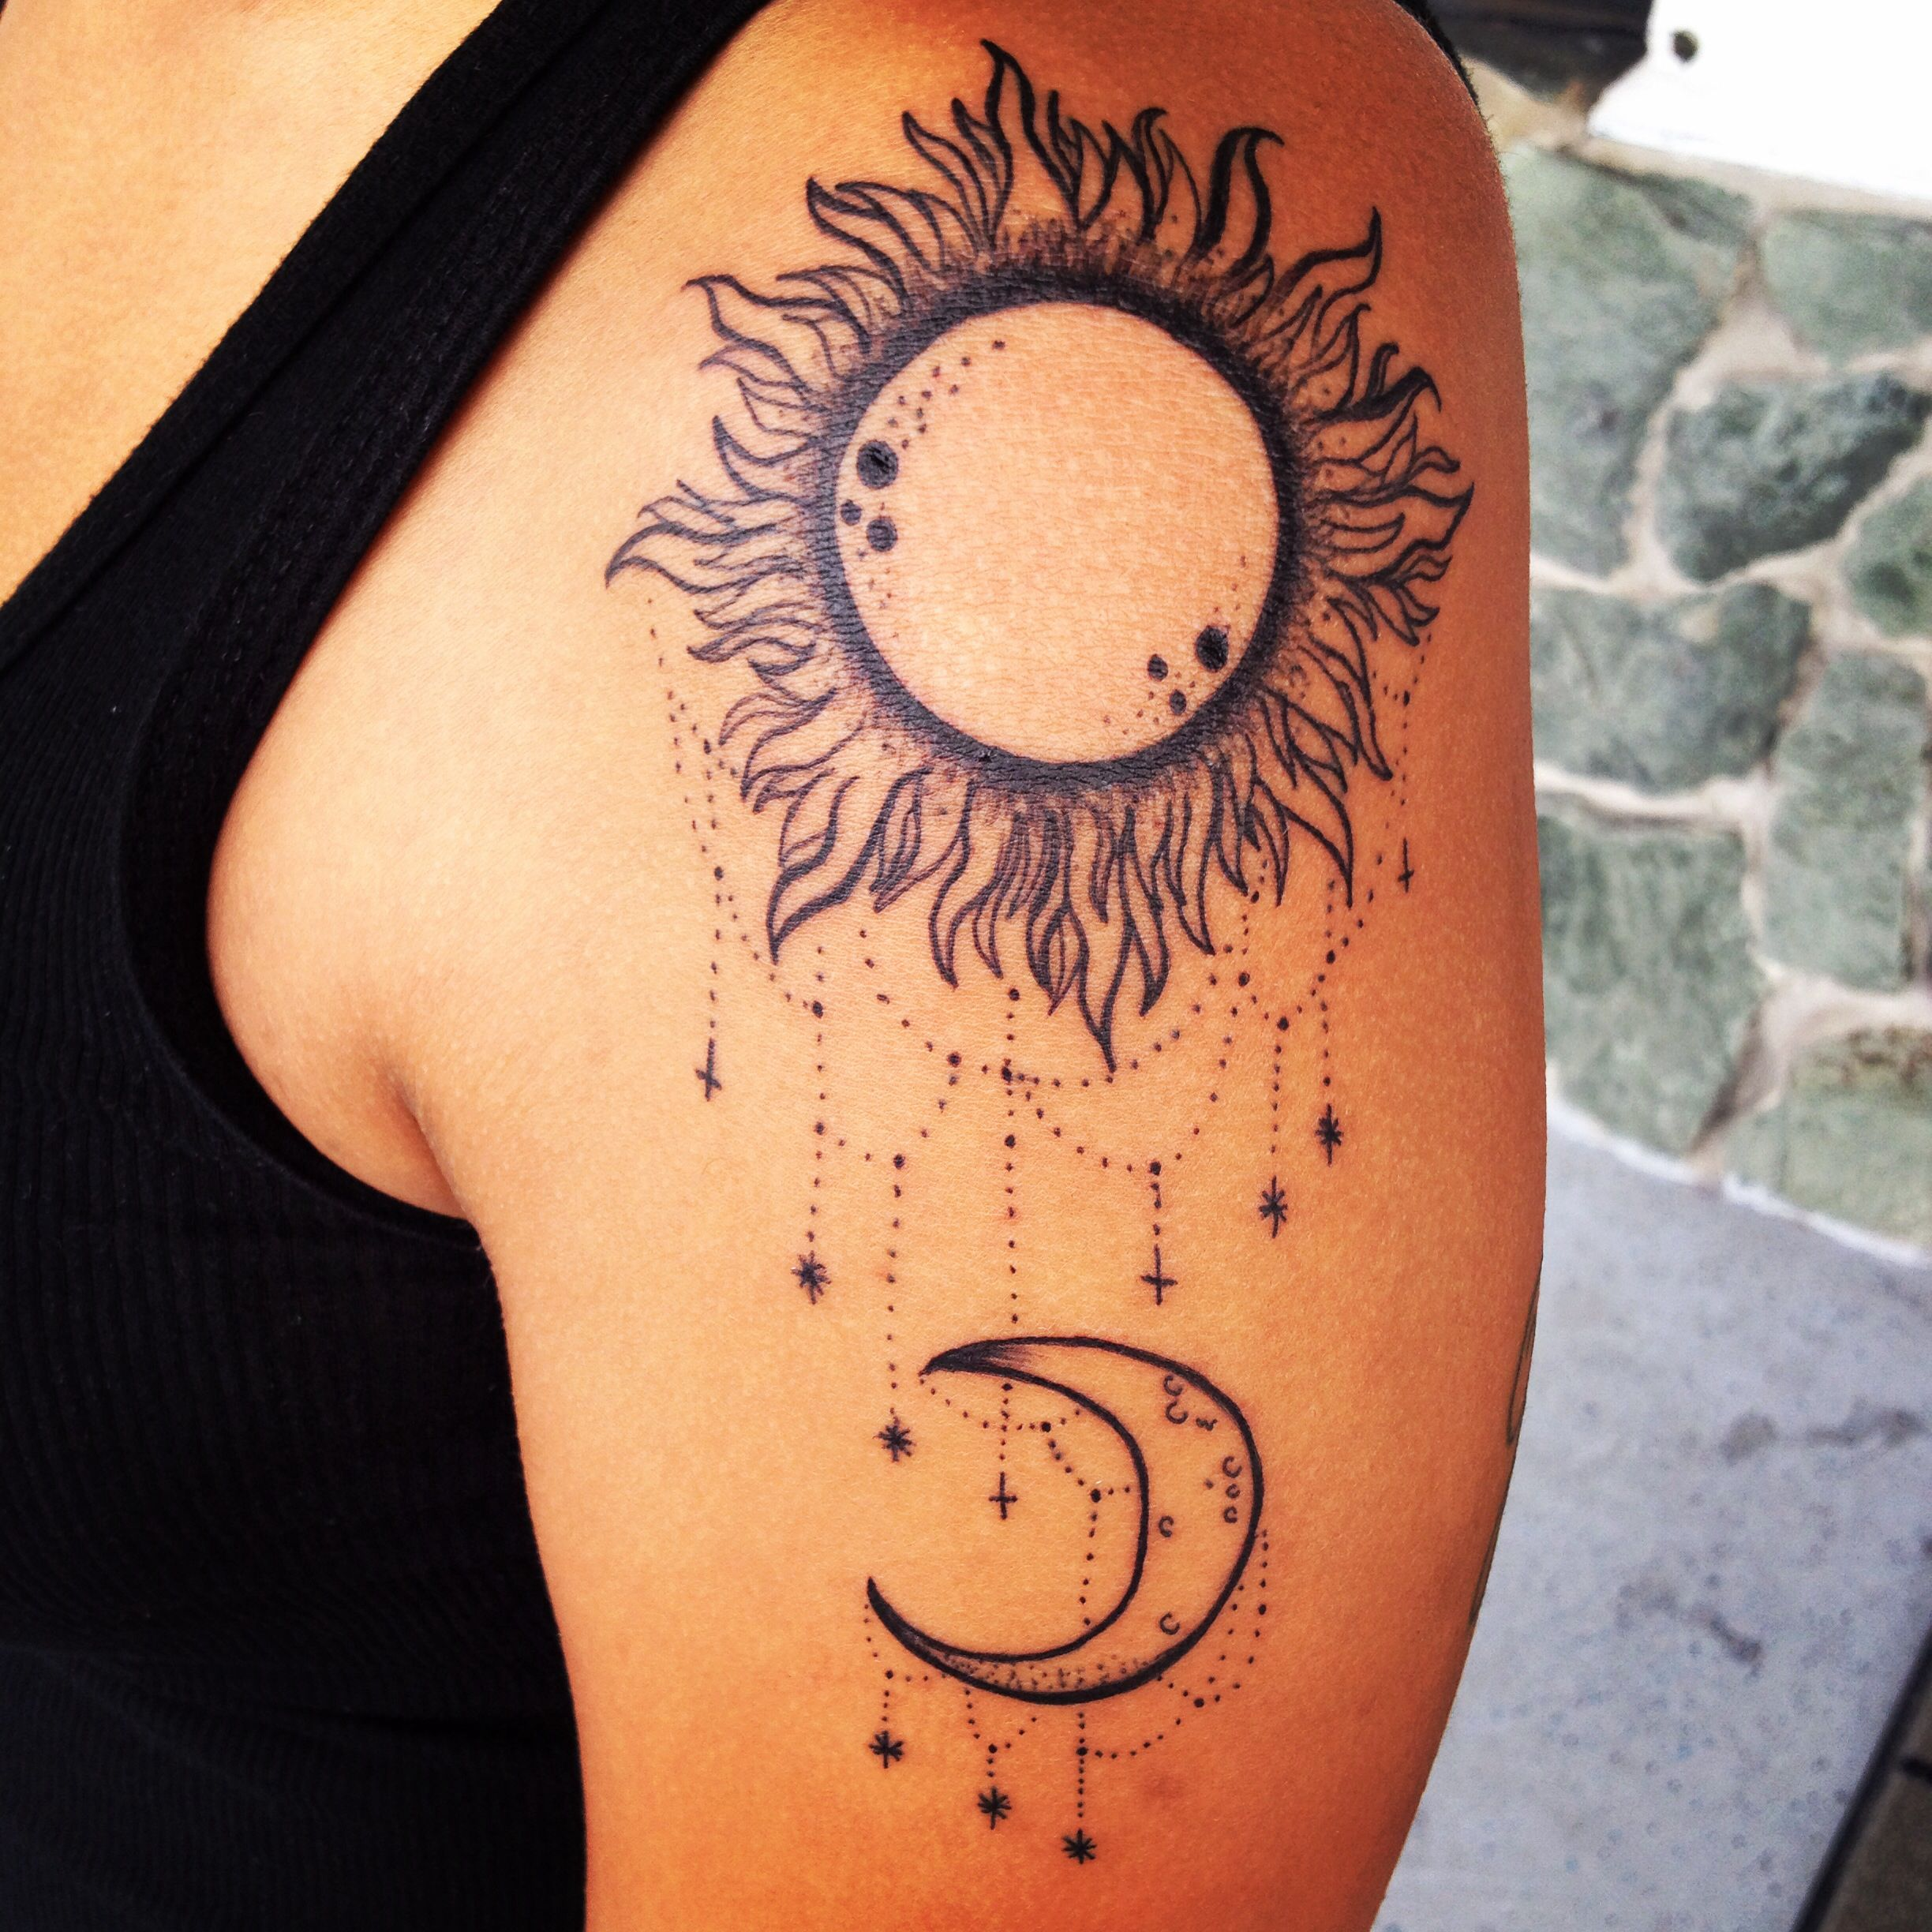 Moon And Cloud Tattoo Small: Sun And Moon Tattoo Done On My Friend